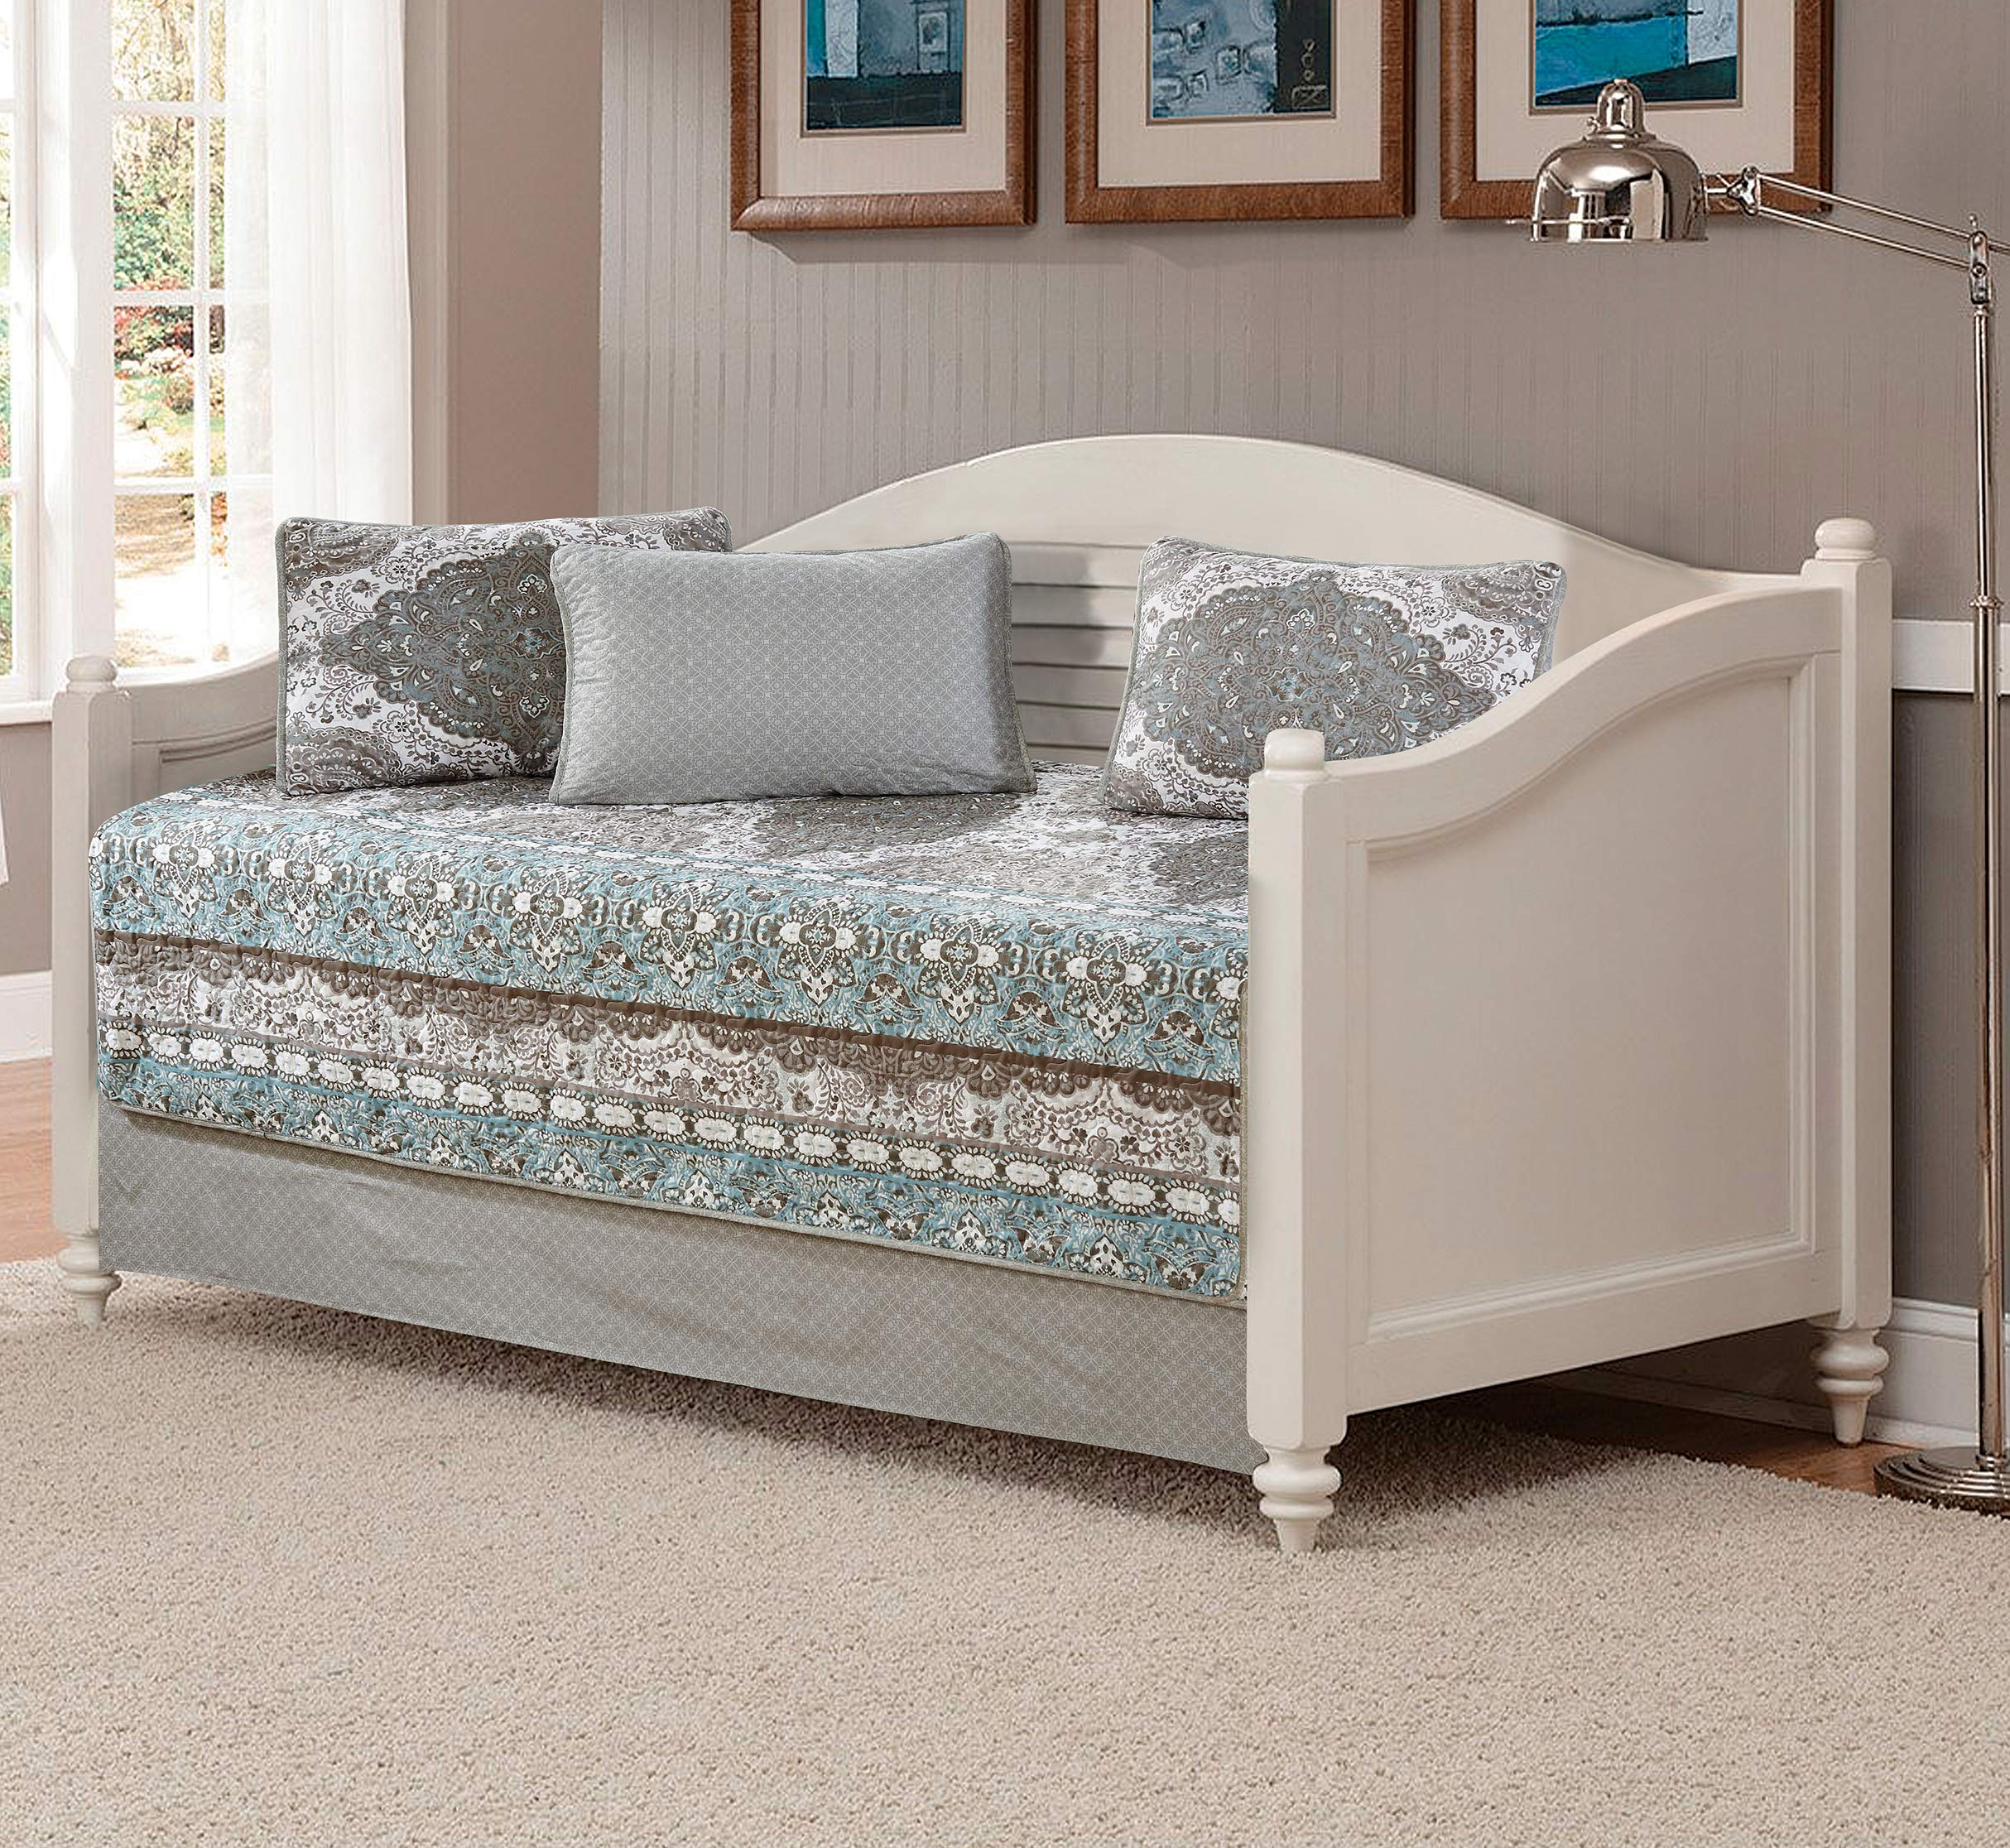 Linen Plus 5pc Daybed Cover Set Floral Aqua Blue Taupe White New